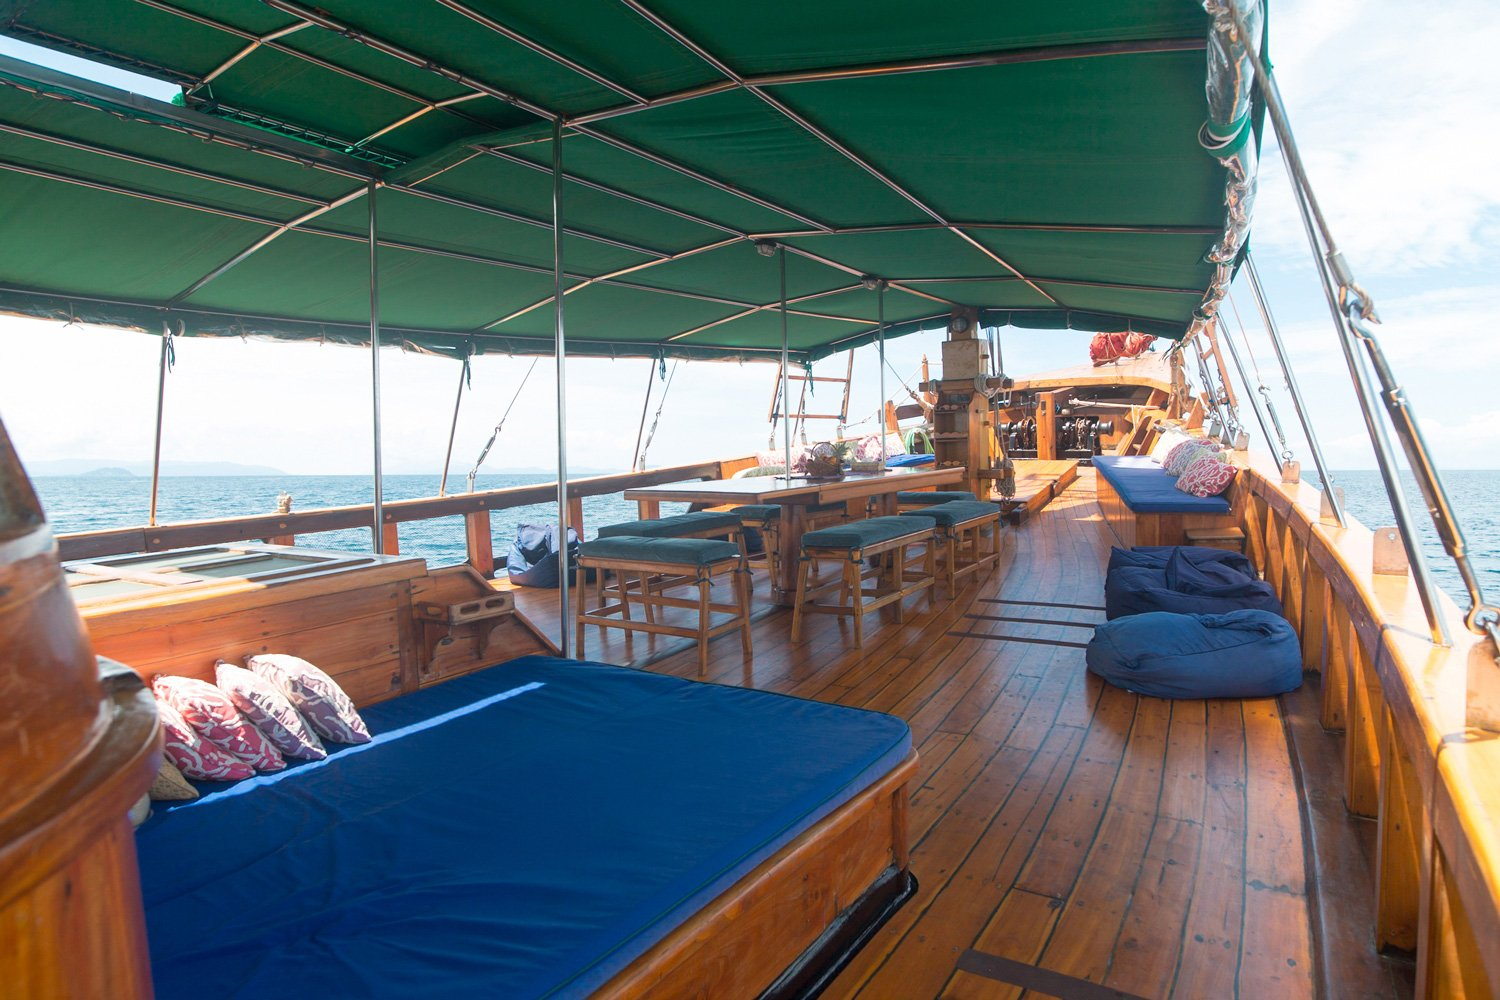 View of the daytime setup of the main deck